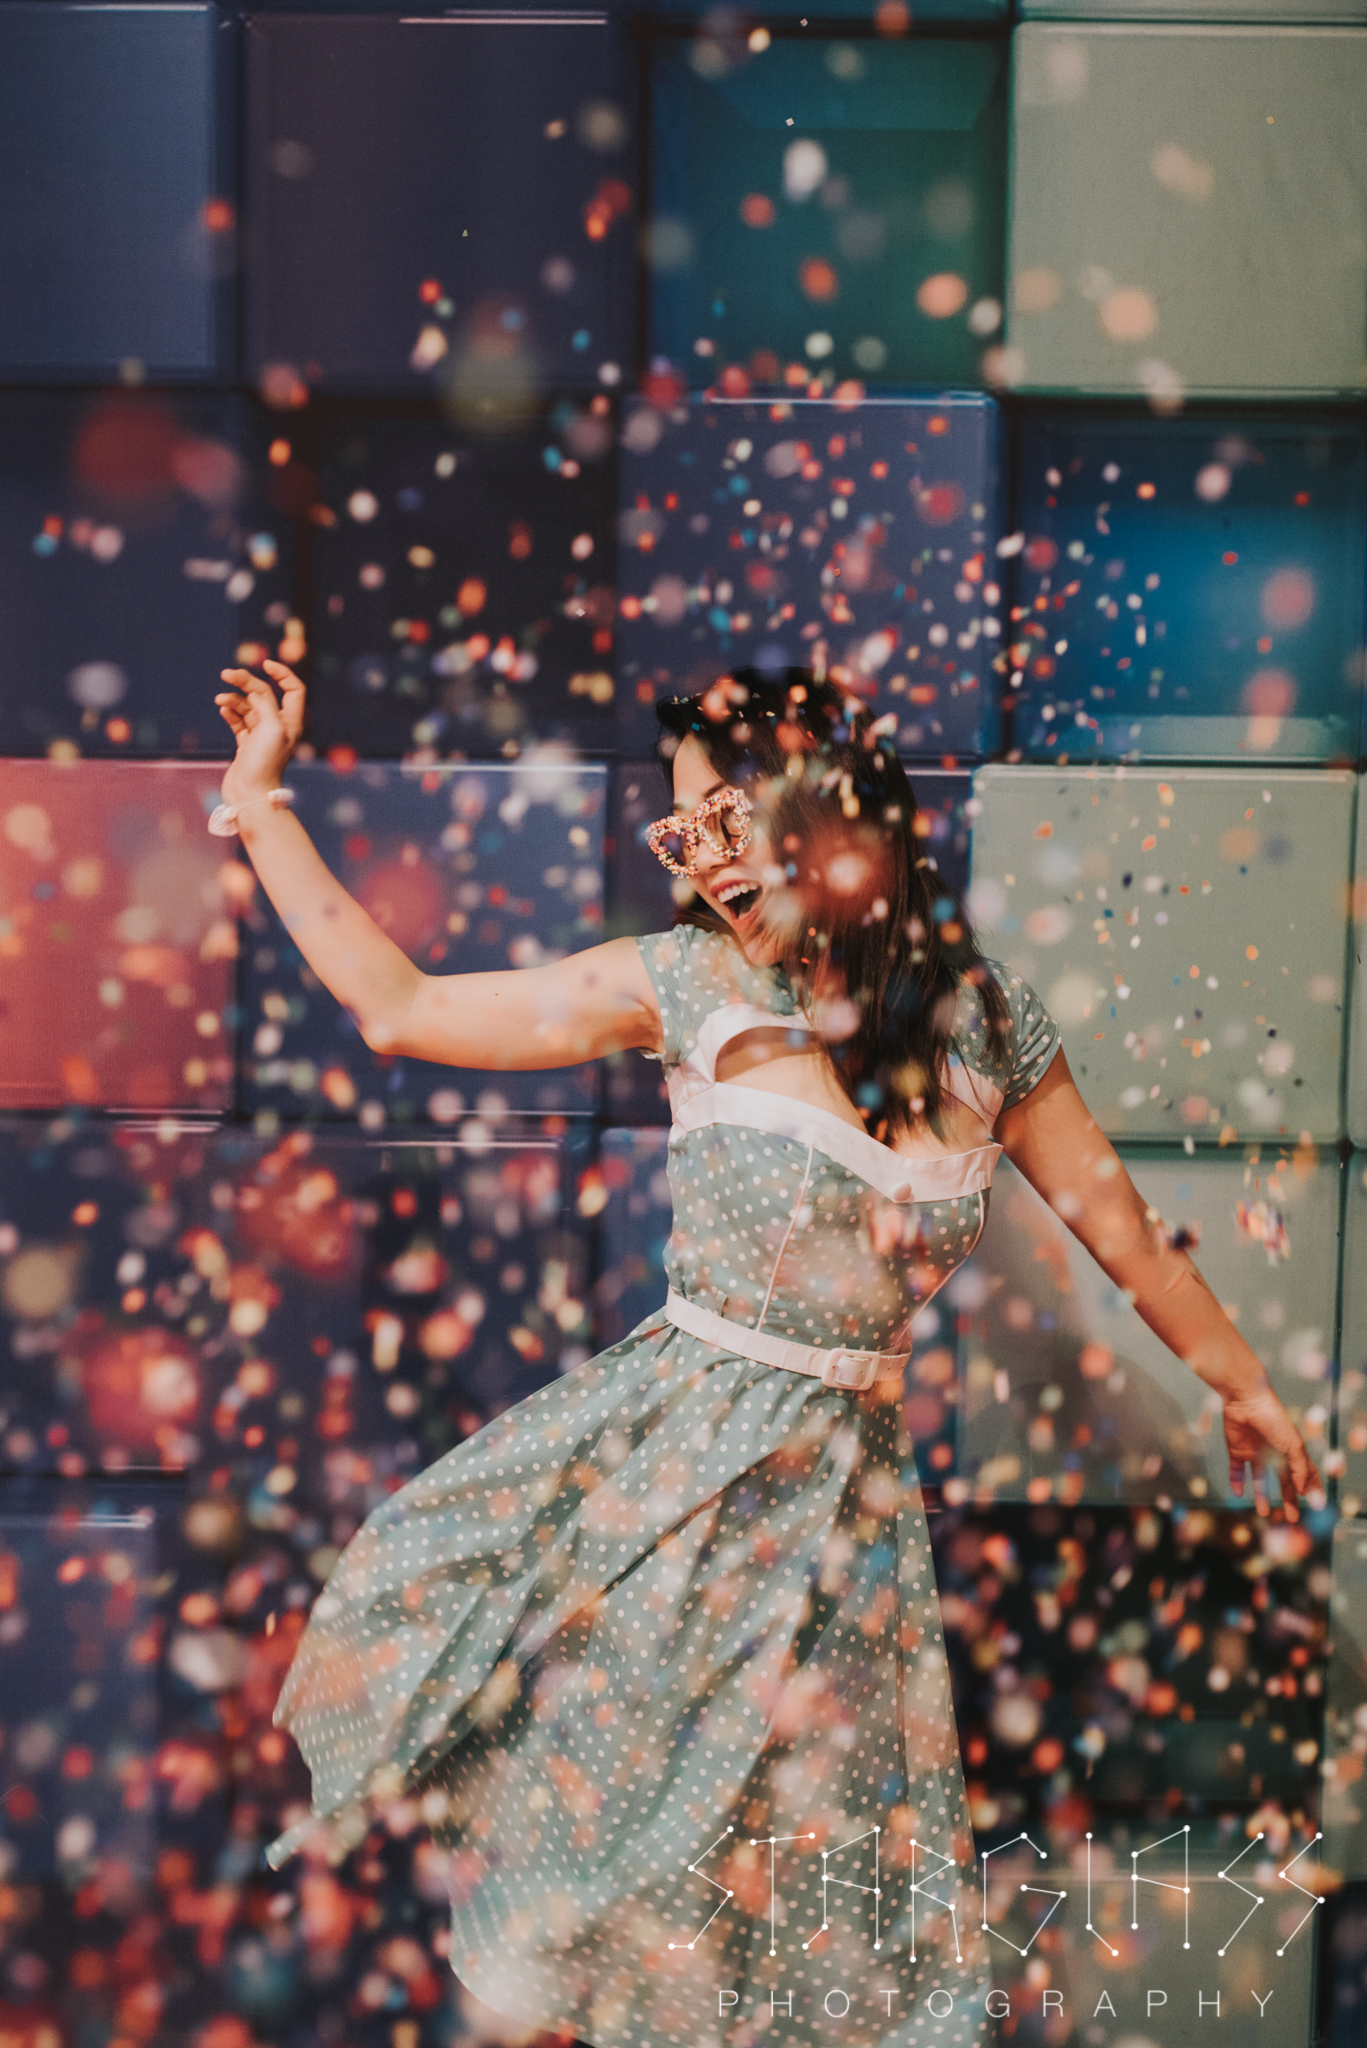 Portrait of a woman in a retro dress posing in a rainbow explosion of confetti.